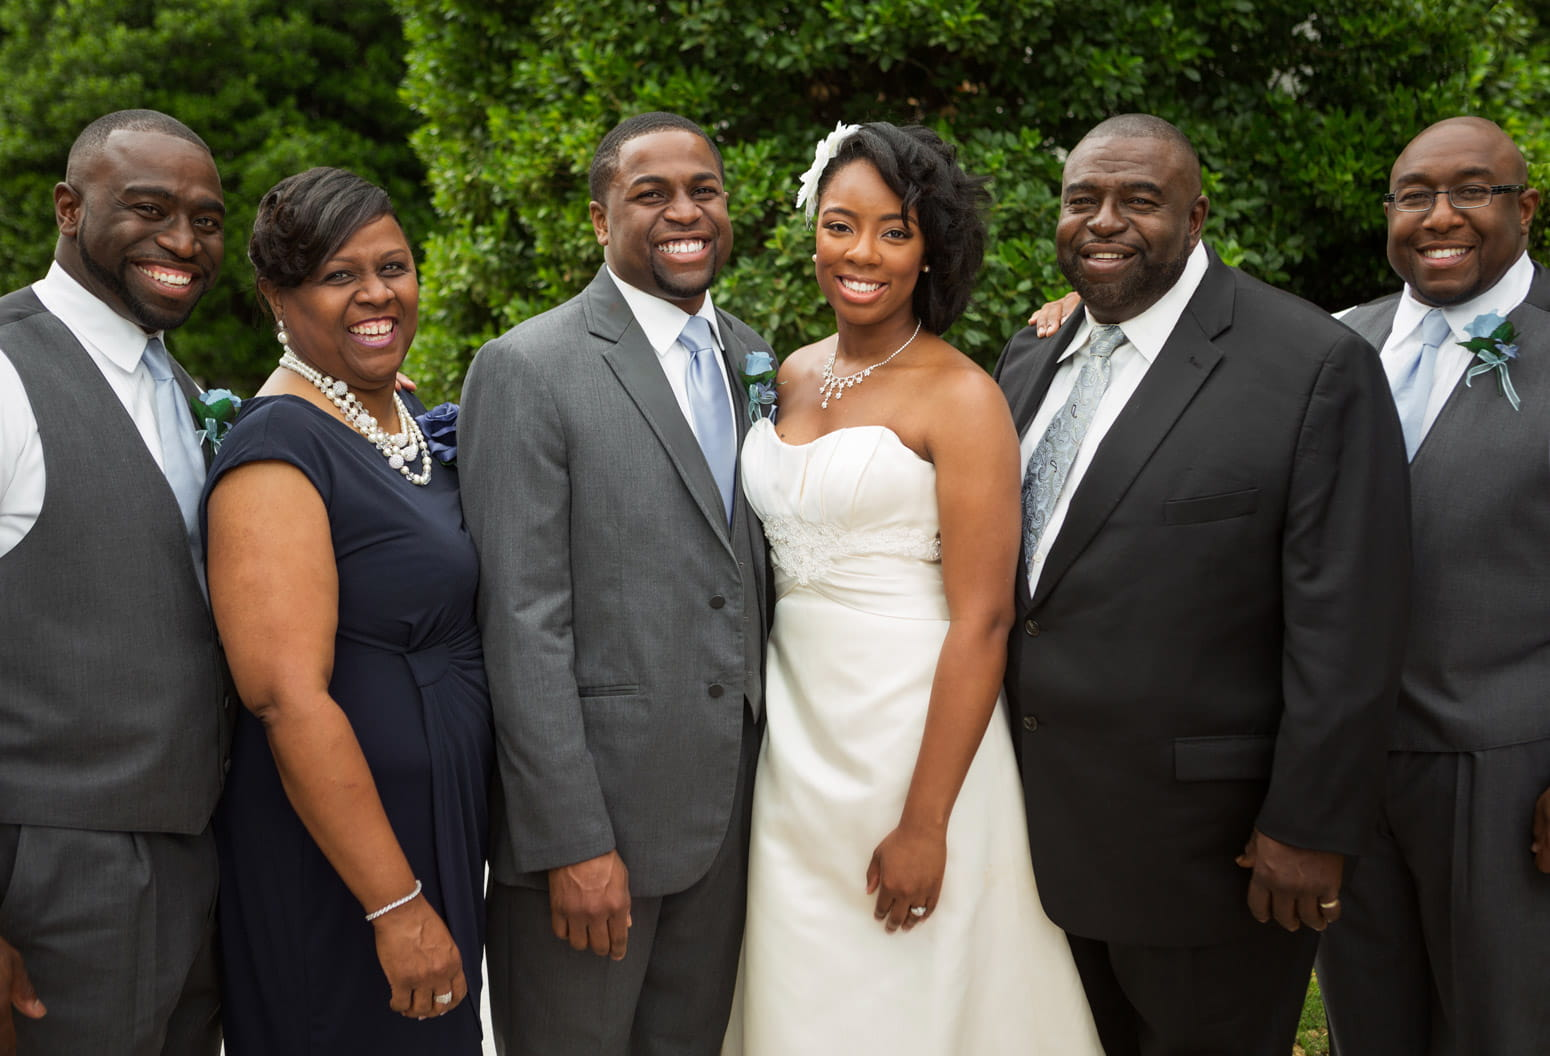 African American family with bride and groom